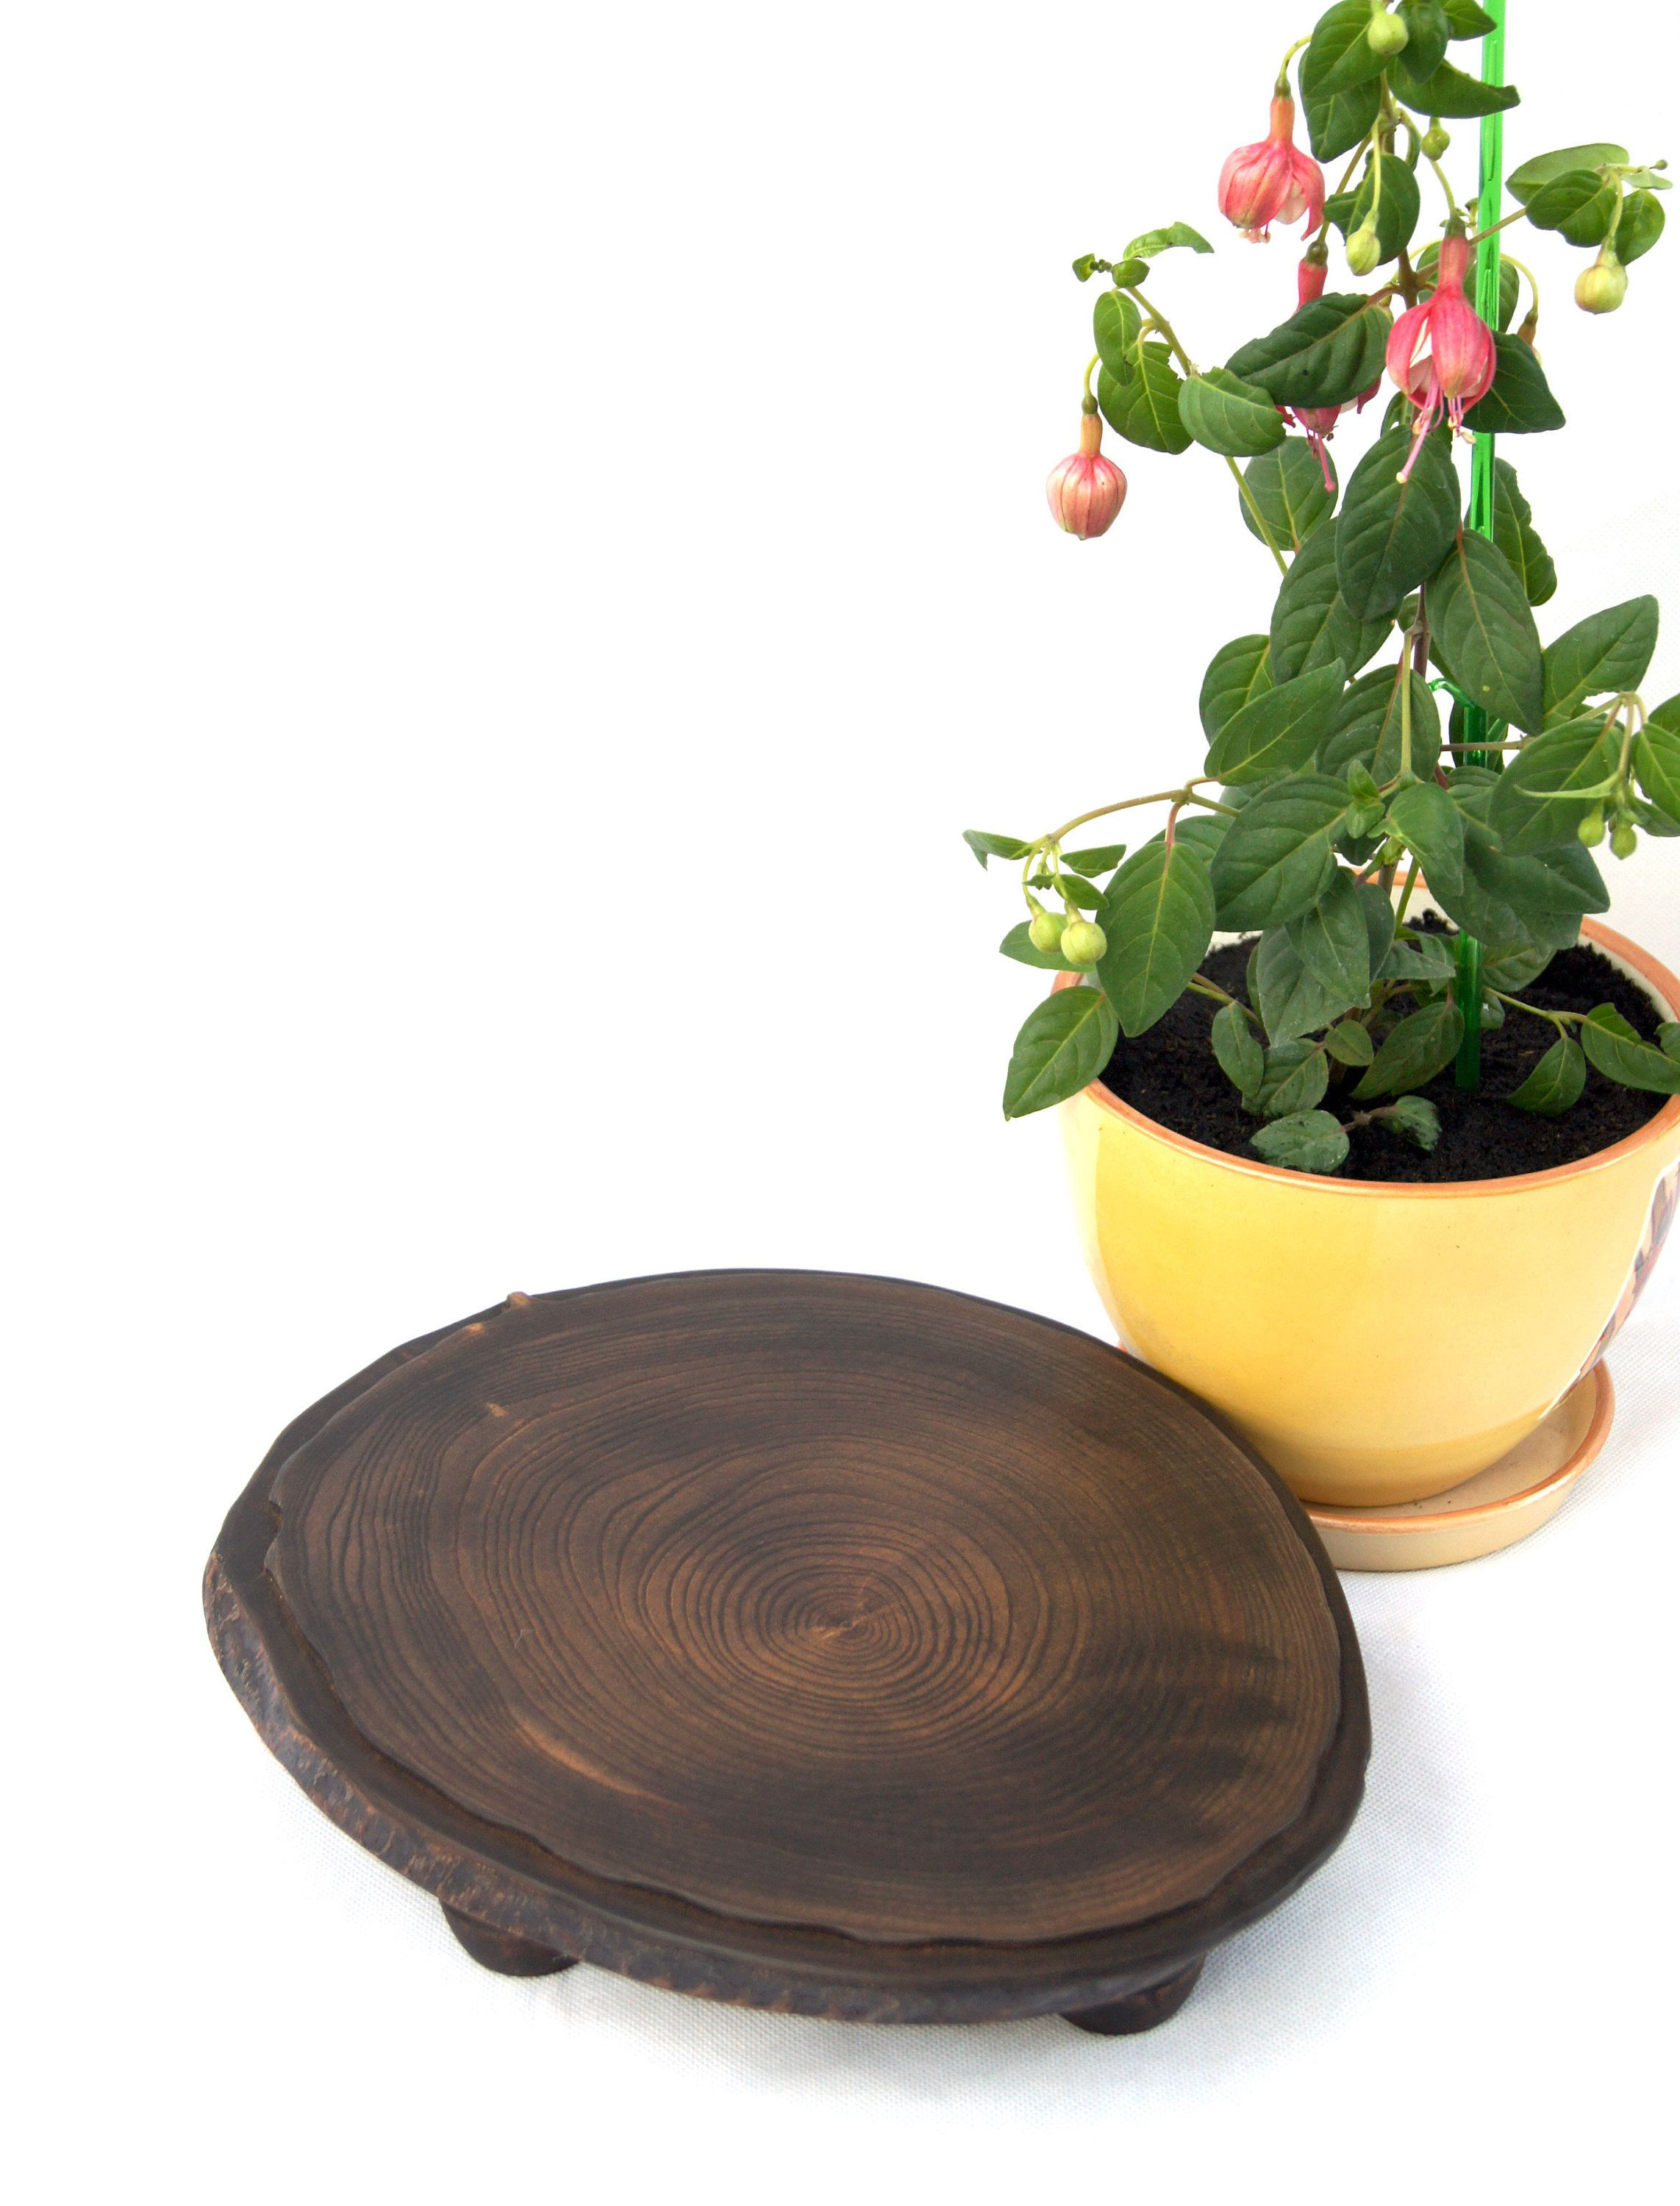 Small Live Edge Wood Slab Plant Stand Indoor Rustic Wooden Planter Stand With Legs Bonsai Pot Stand Flower Pot Holder Acacia Tree Stump Base In 2020